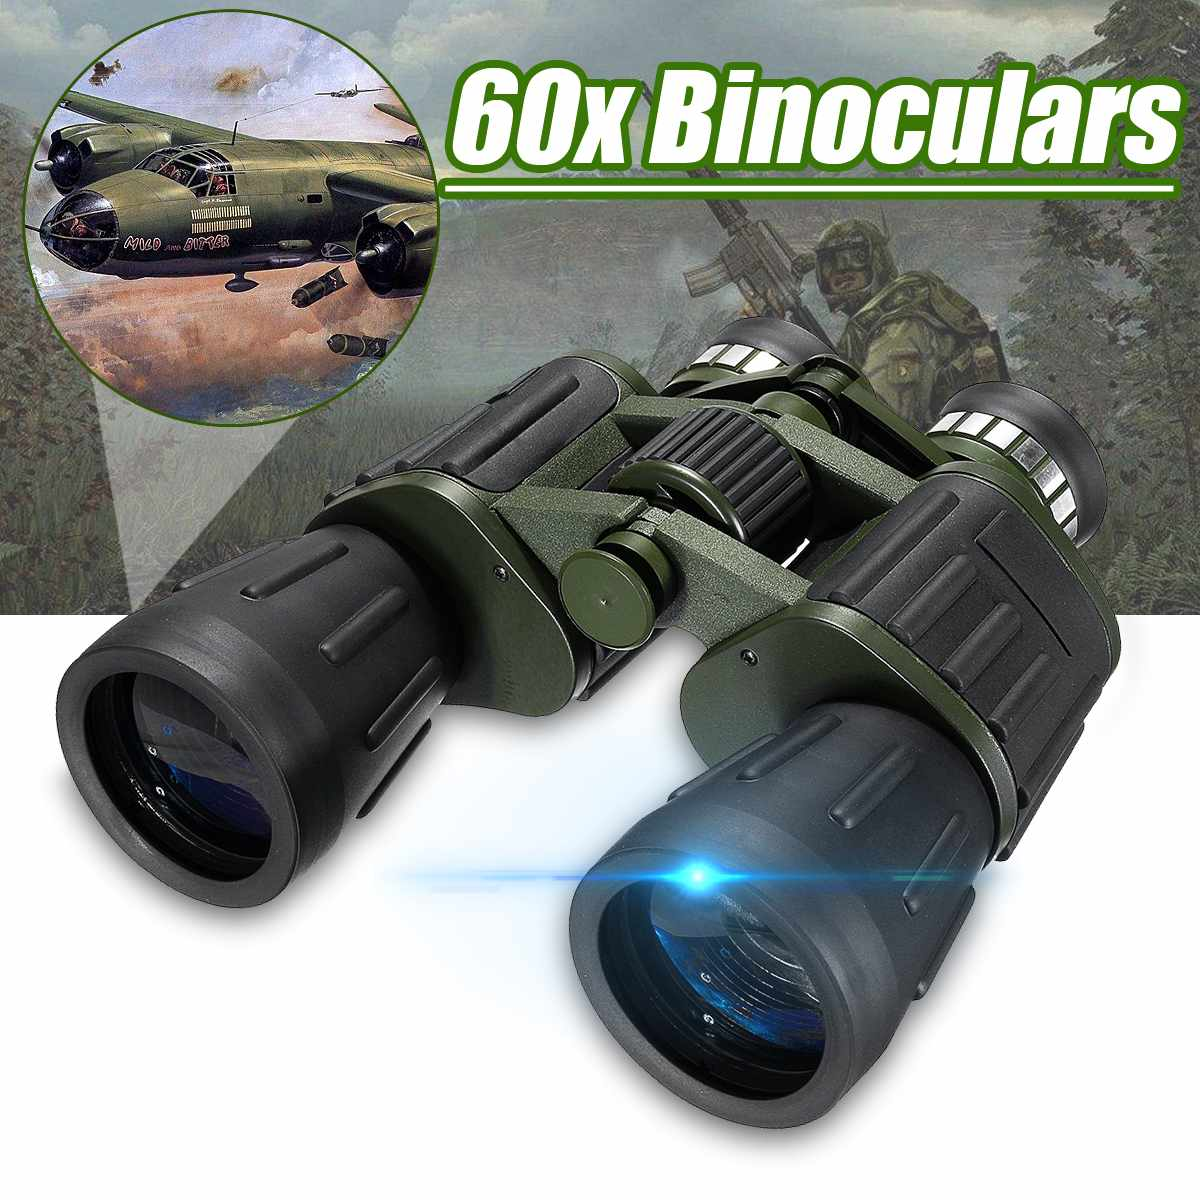 2019 New Arrival 50x60 Binoculars Zoom Field glasses Great Handheld Telescopes DropShipping for Outdoor Camping High Definition